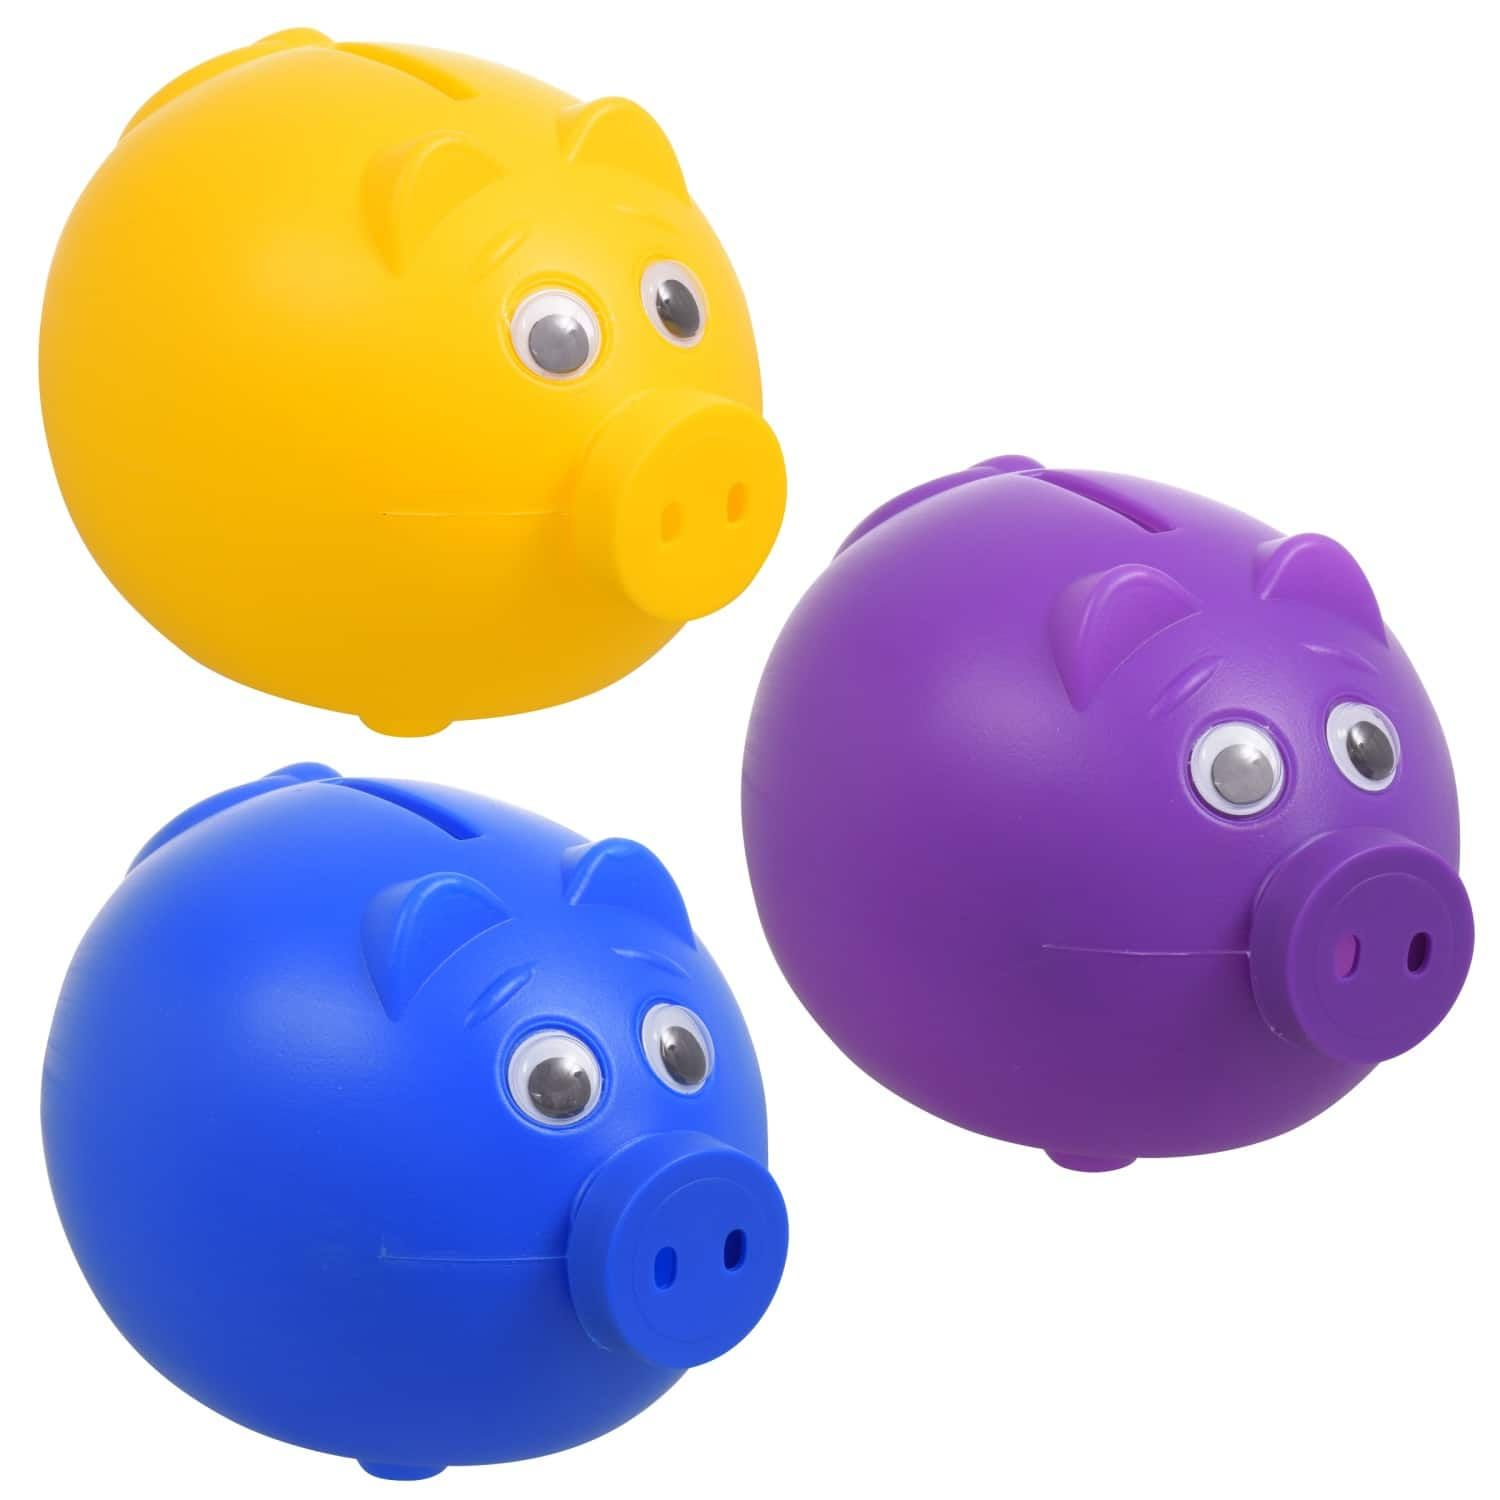 Plastic Piggy Bank Plastic Piggy Banks Piggy Bank Stocking Stuffers